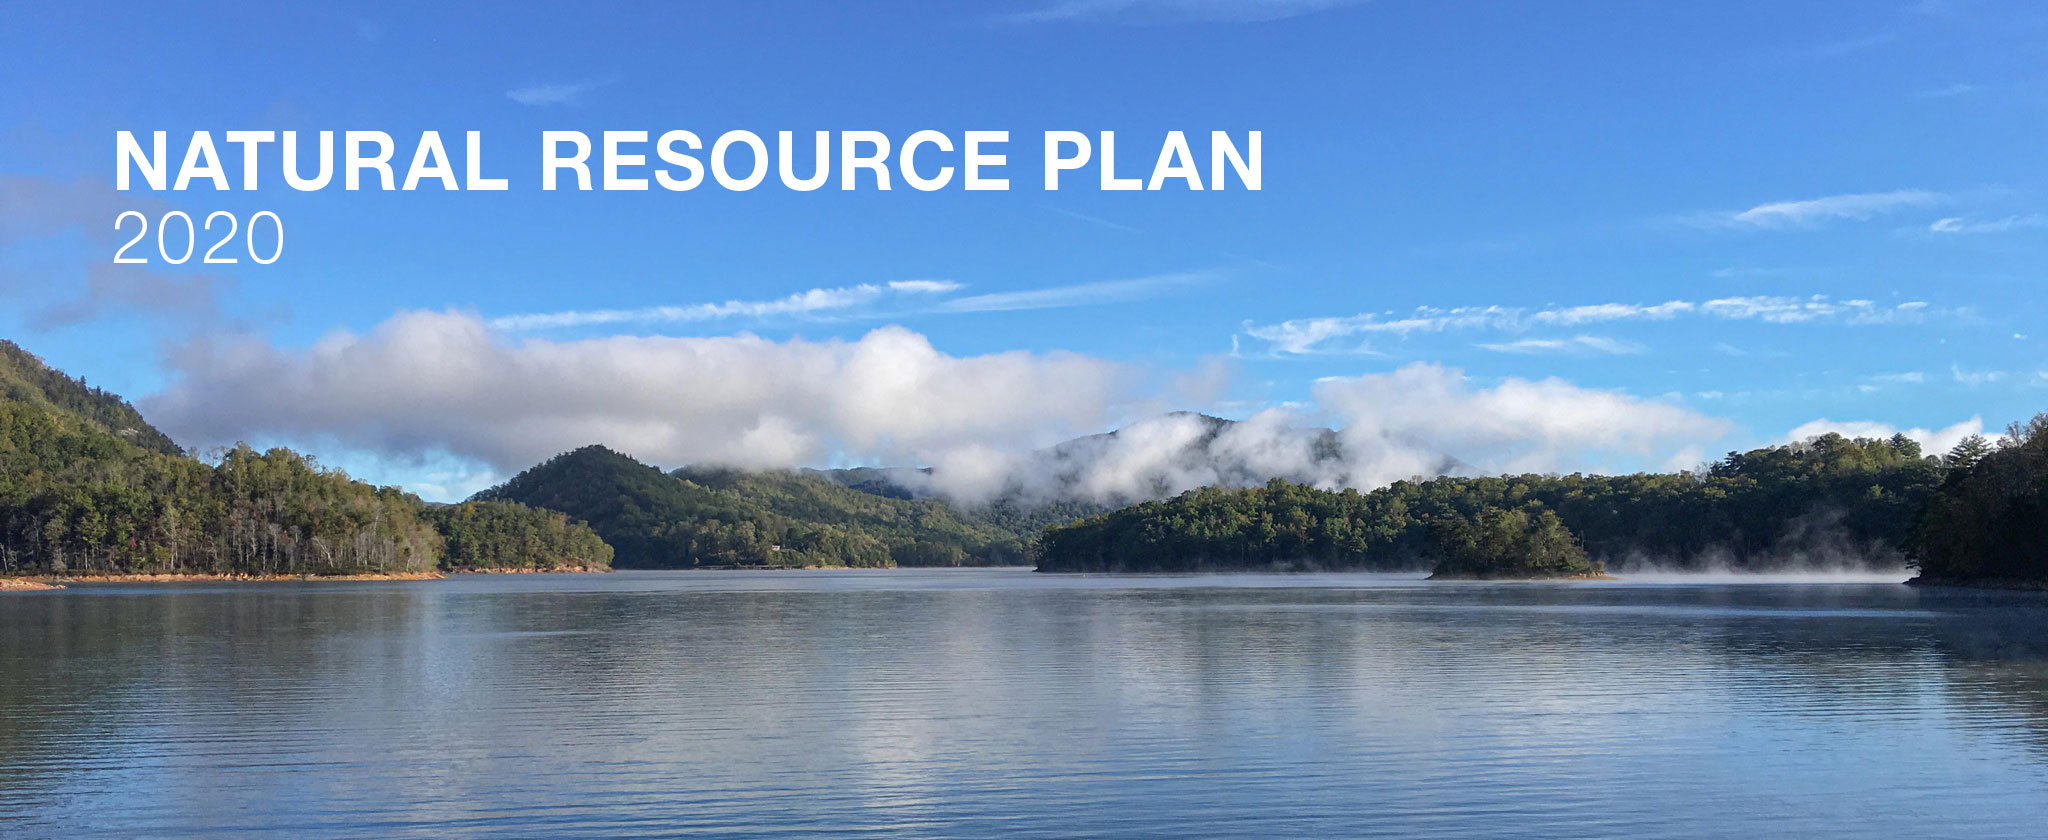 Natural Resource Plan Watauga